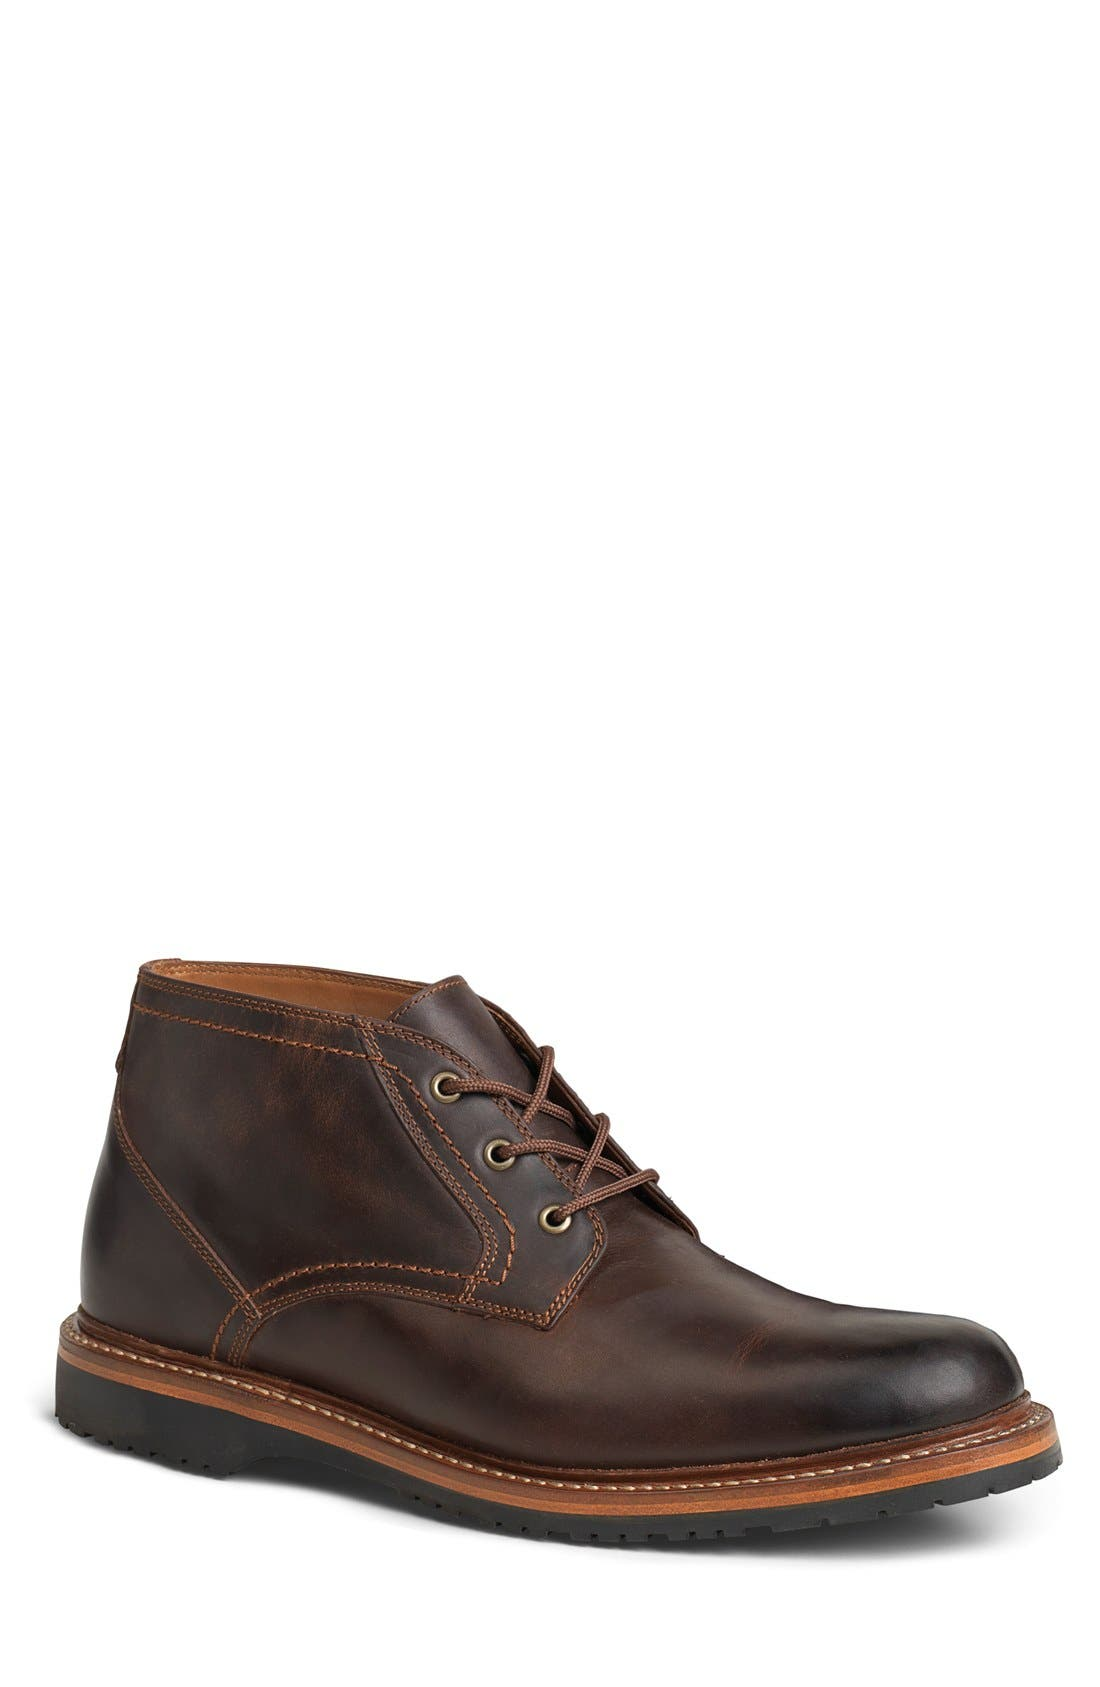 Main Image - Trask Arlington Chukka Boot (Men)